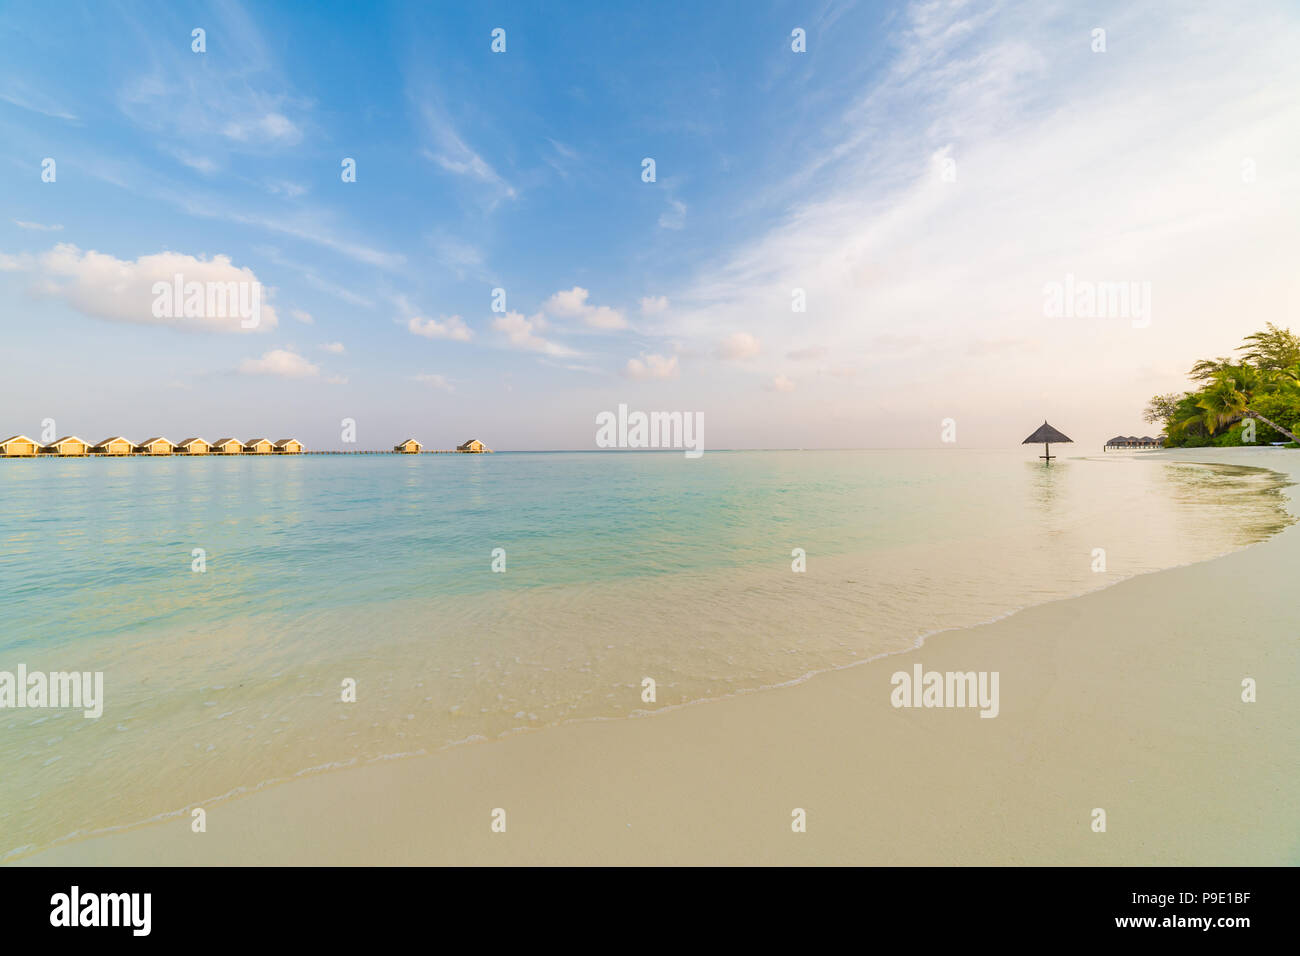 Amazing Maldives scenery, water villas and beach umbrella with palm trees. Tranquil sunset landscape in tropical beach. Luxury vacation destination Stock Photo